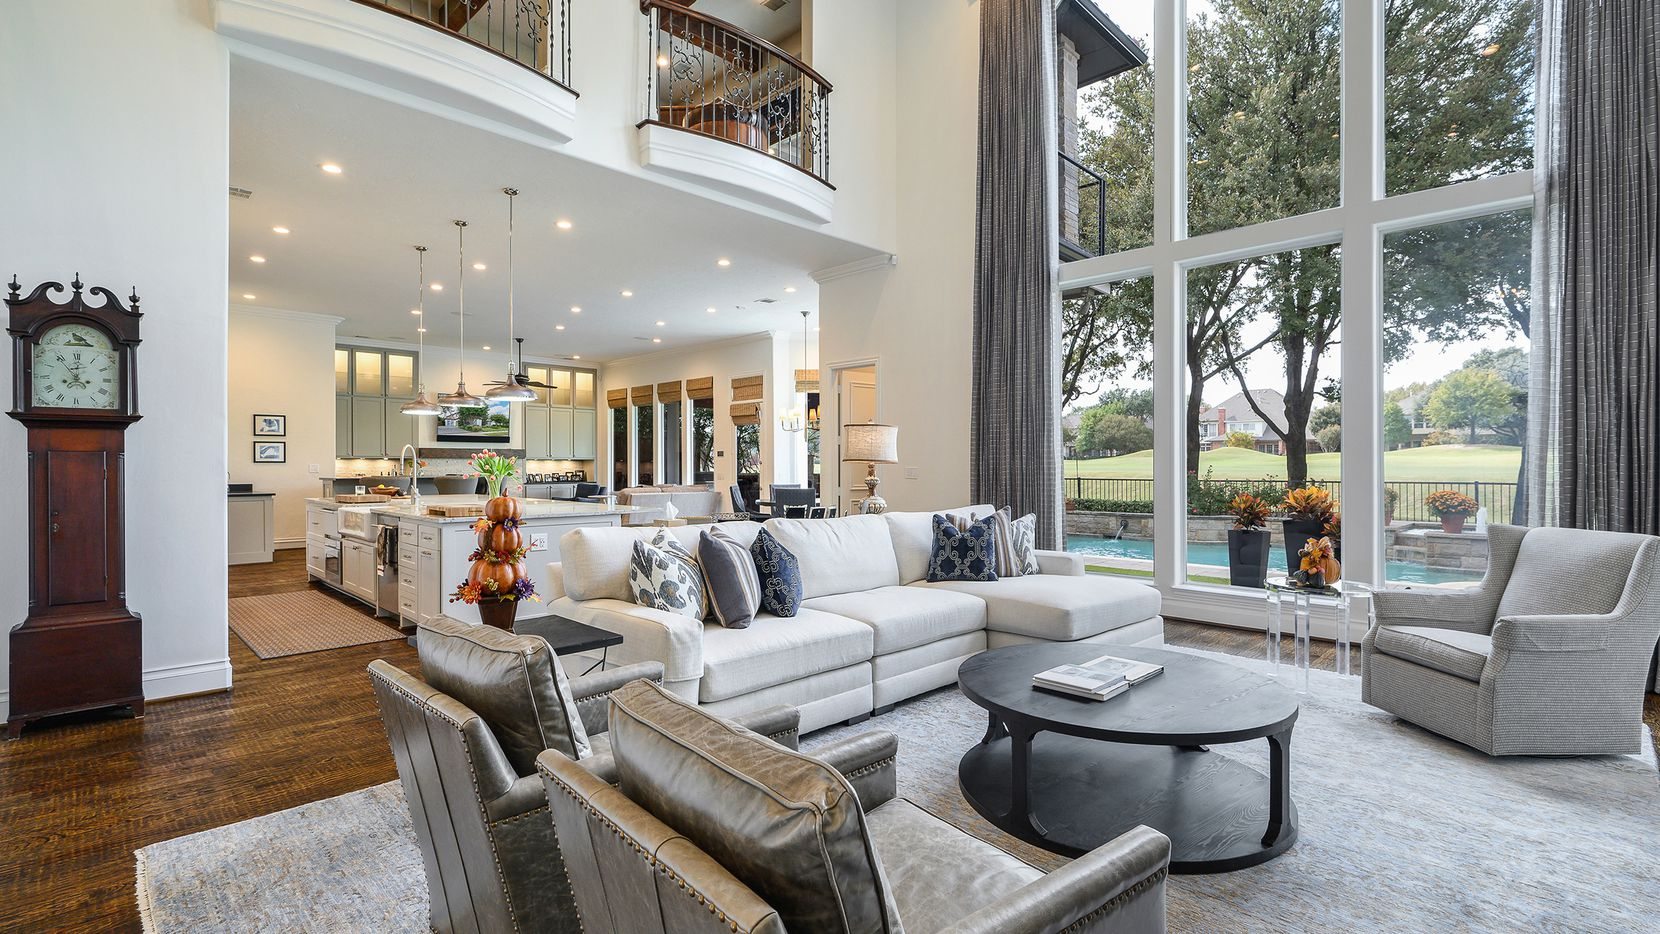 Offered at $1,598,000, the estate at 3013 Shelton Way in Pebble Brook at Willow Bend showcases golf course views and a backyard made for entertaining.